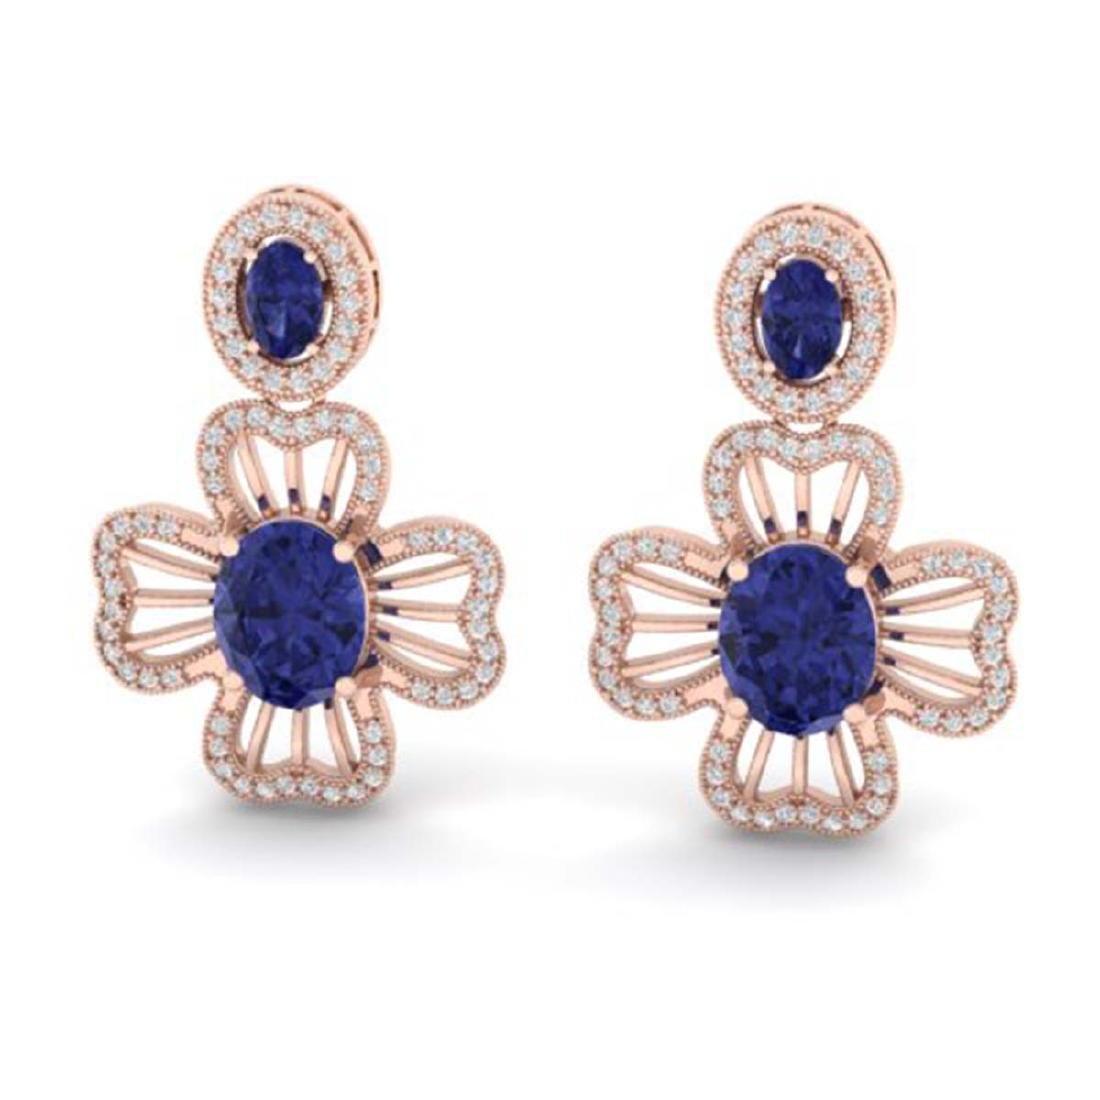 9.26 ctw Tanzanite & VS/SI Diamond Earrings 14K Rose